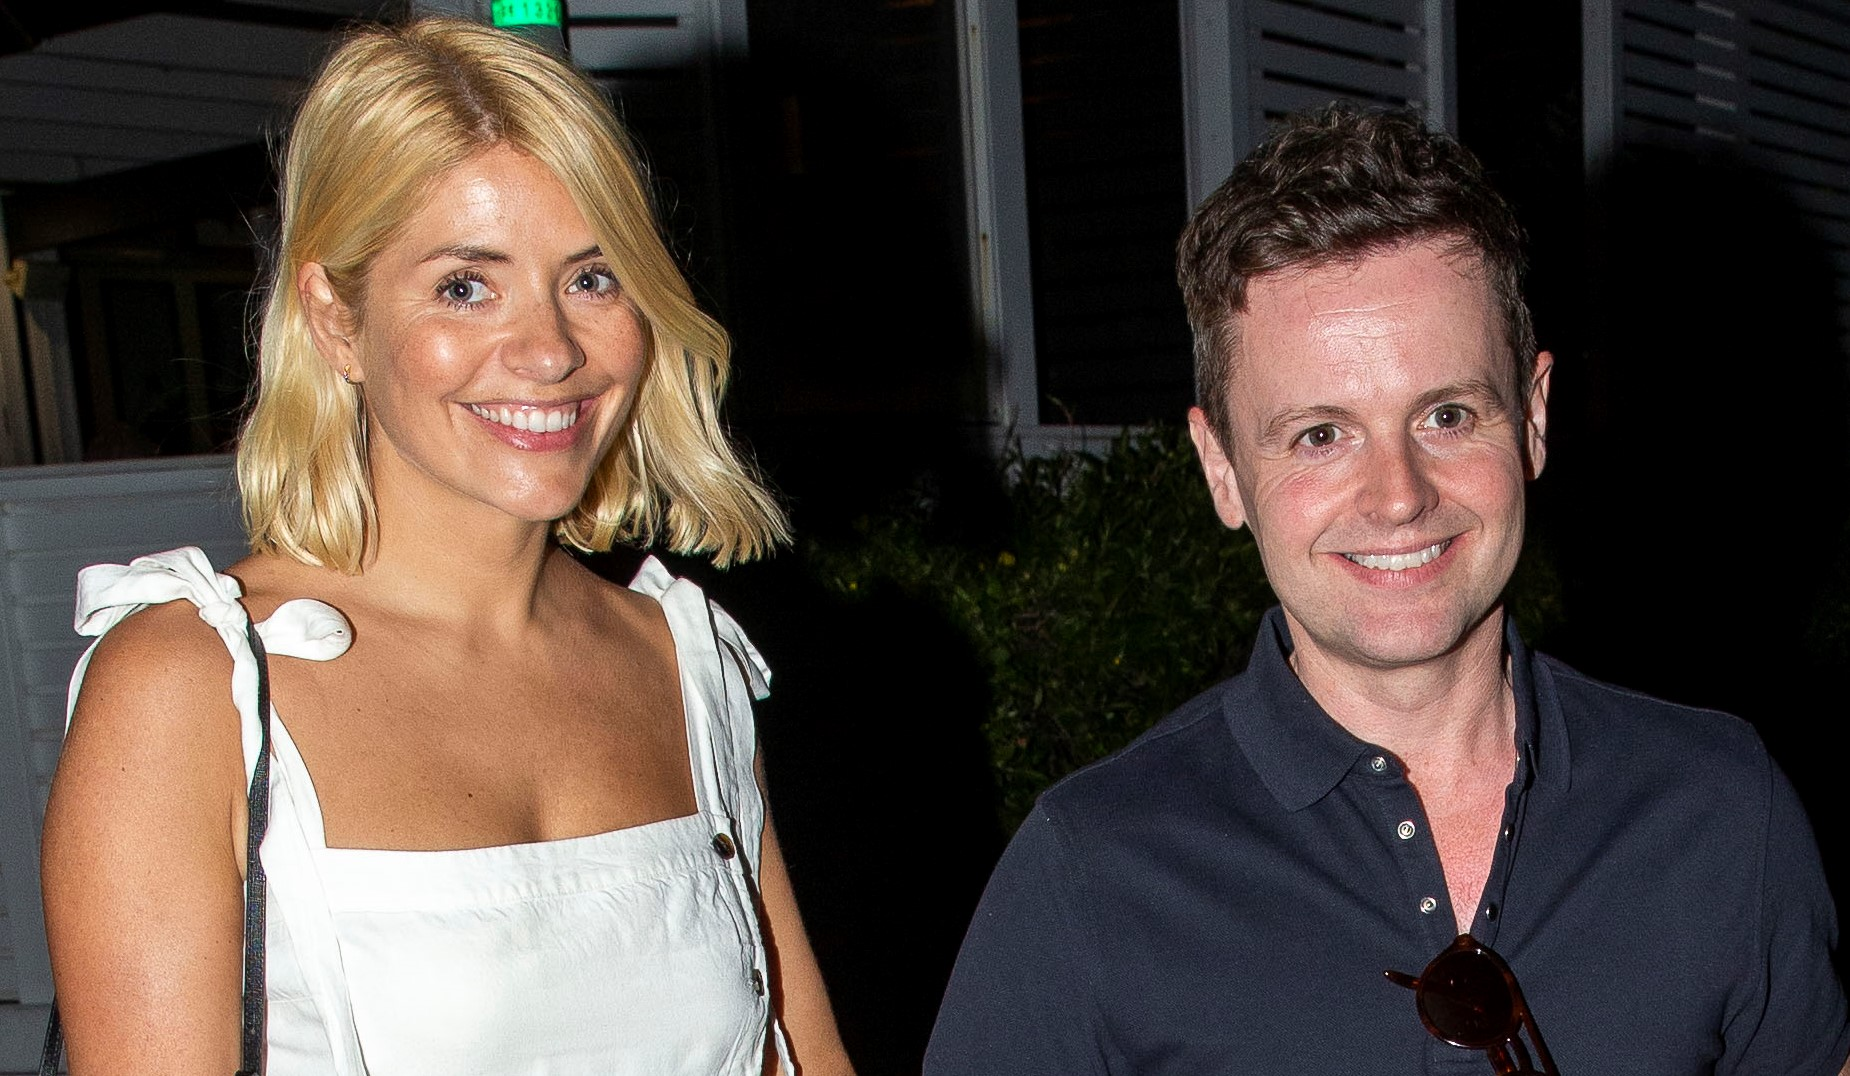 Dec Donnelly hints Holly Willoughby could return to I'm A Celebrity